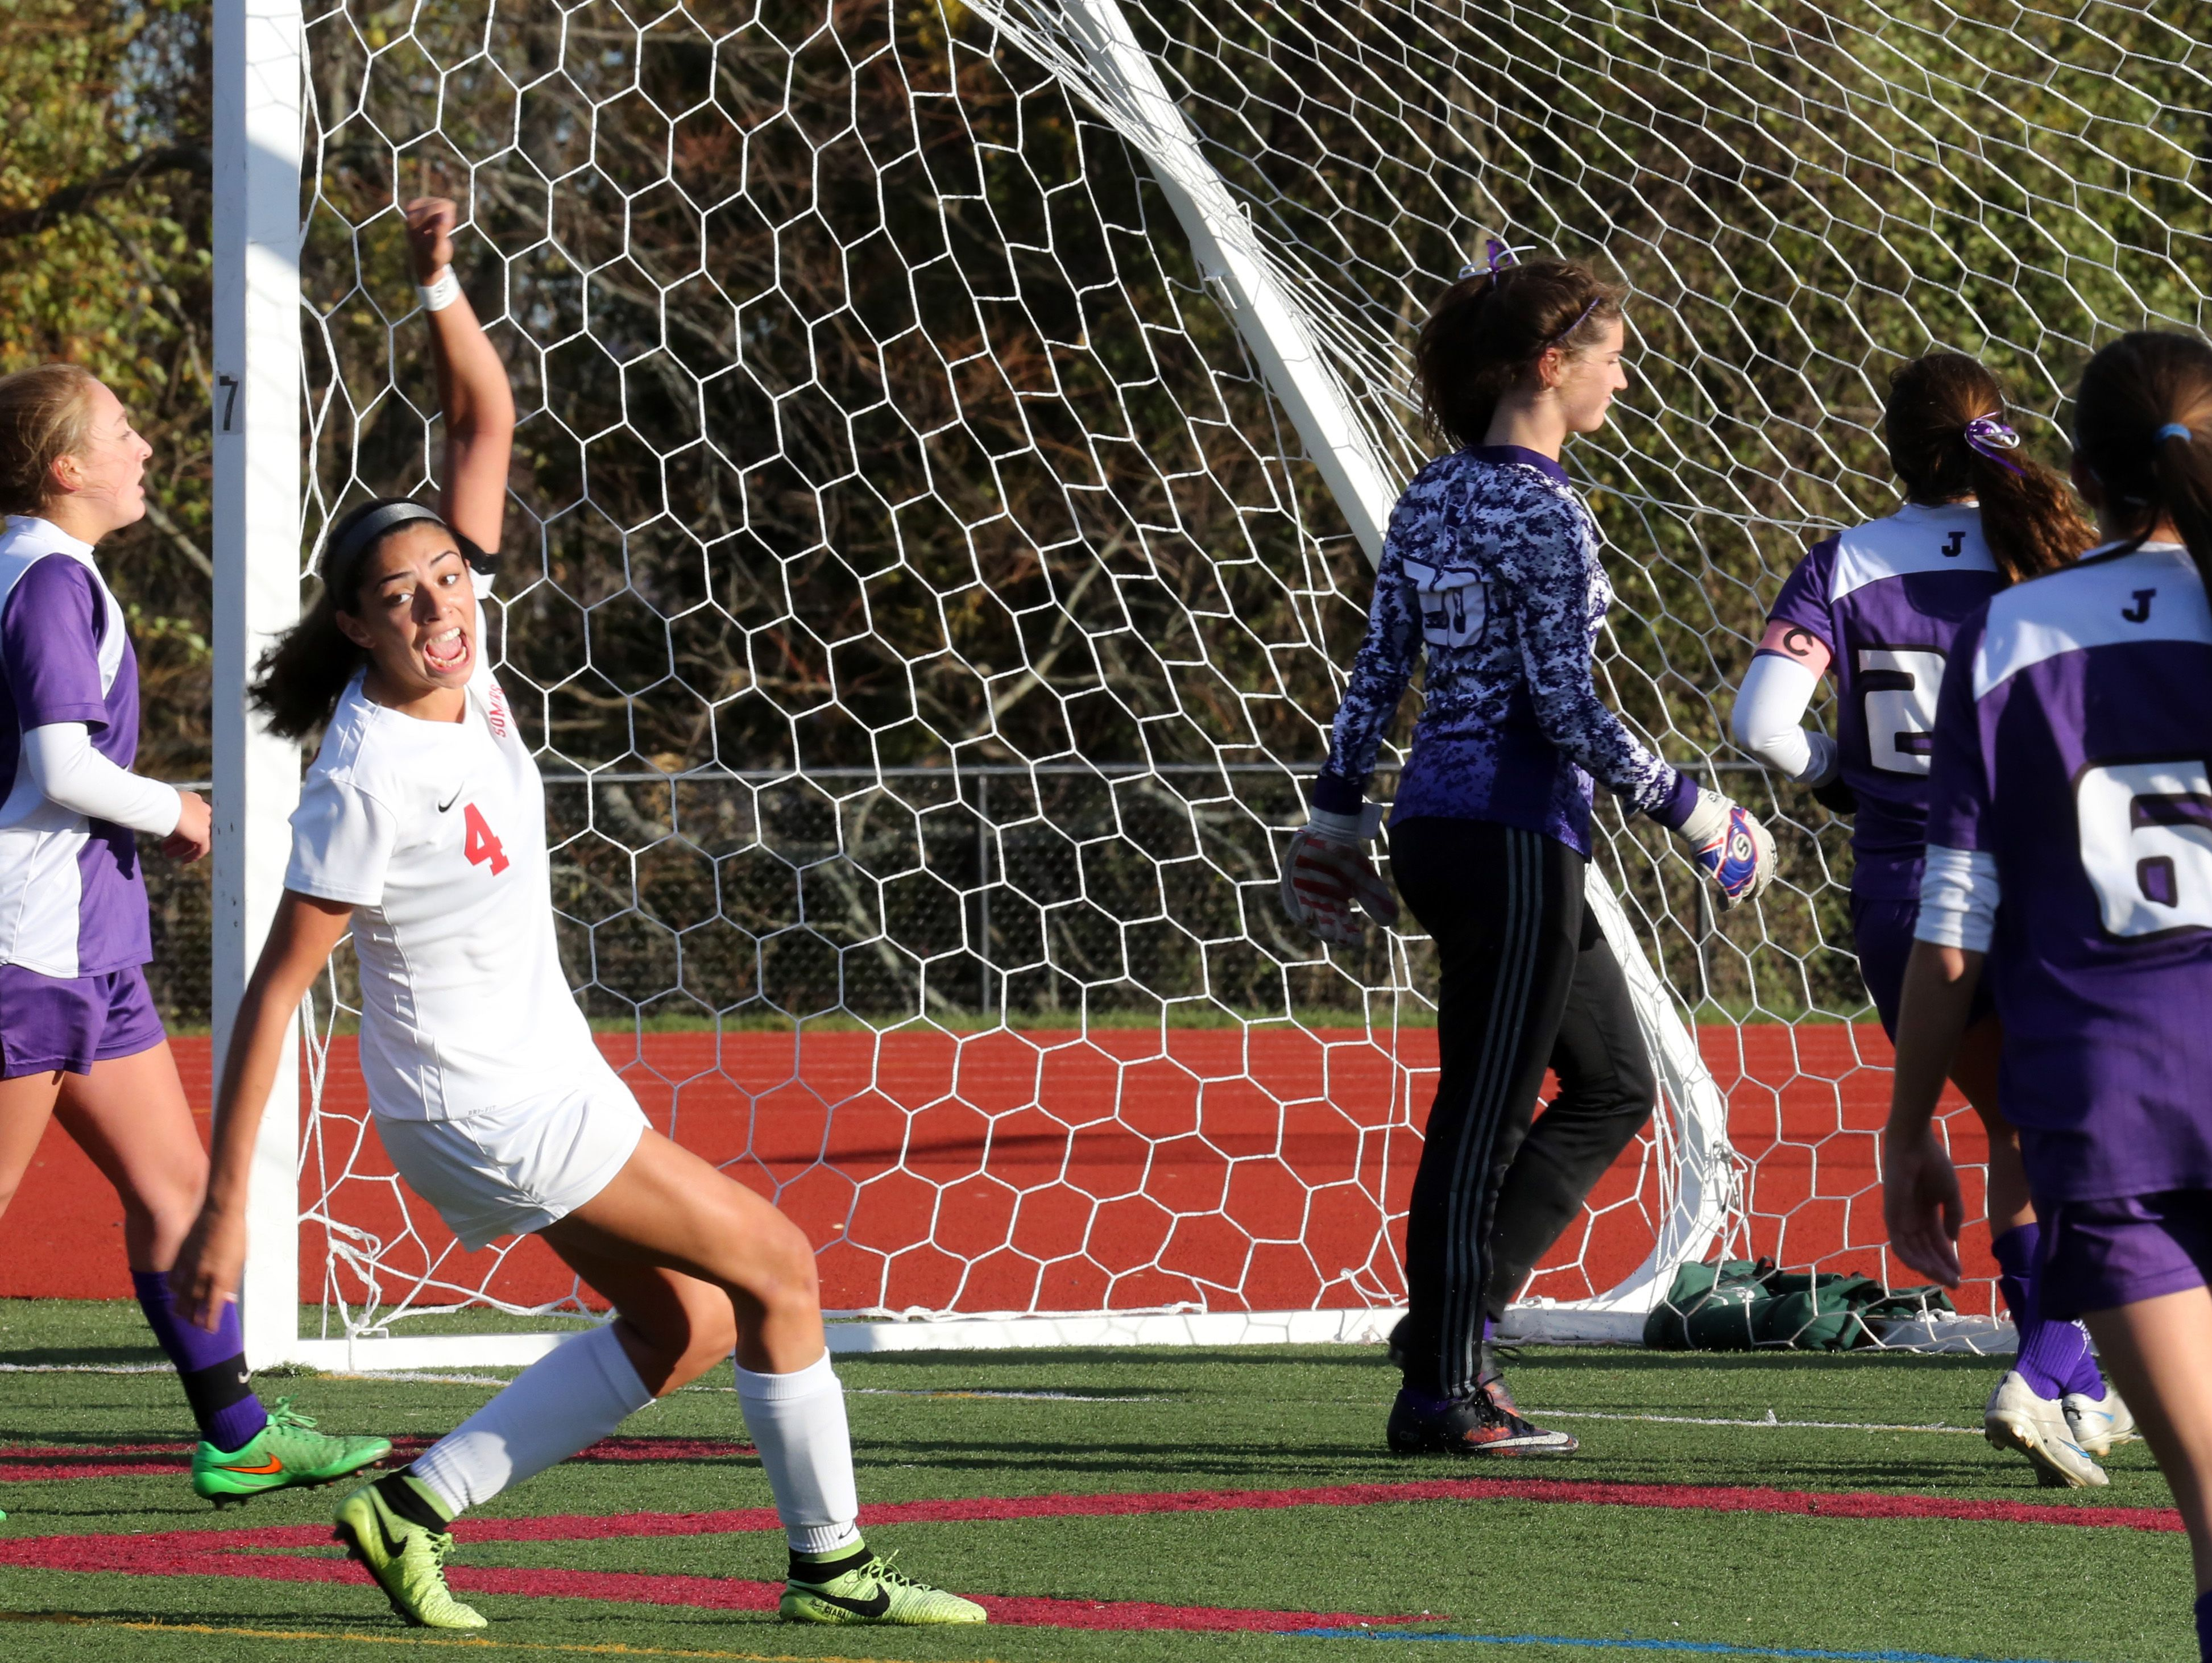 Somers Ciara Ostrander (4) celebrates scoring during Section 1 Class A girls soccer semifinal at Somers High School on Oct. 28, 2016. Somers defeats John Jay Cross River 4-2.